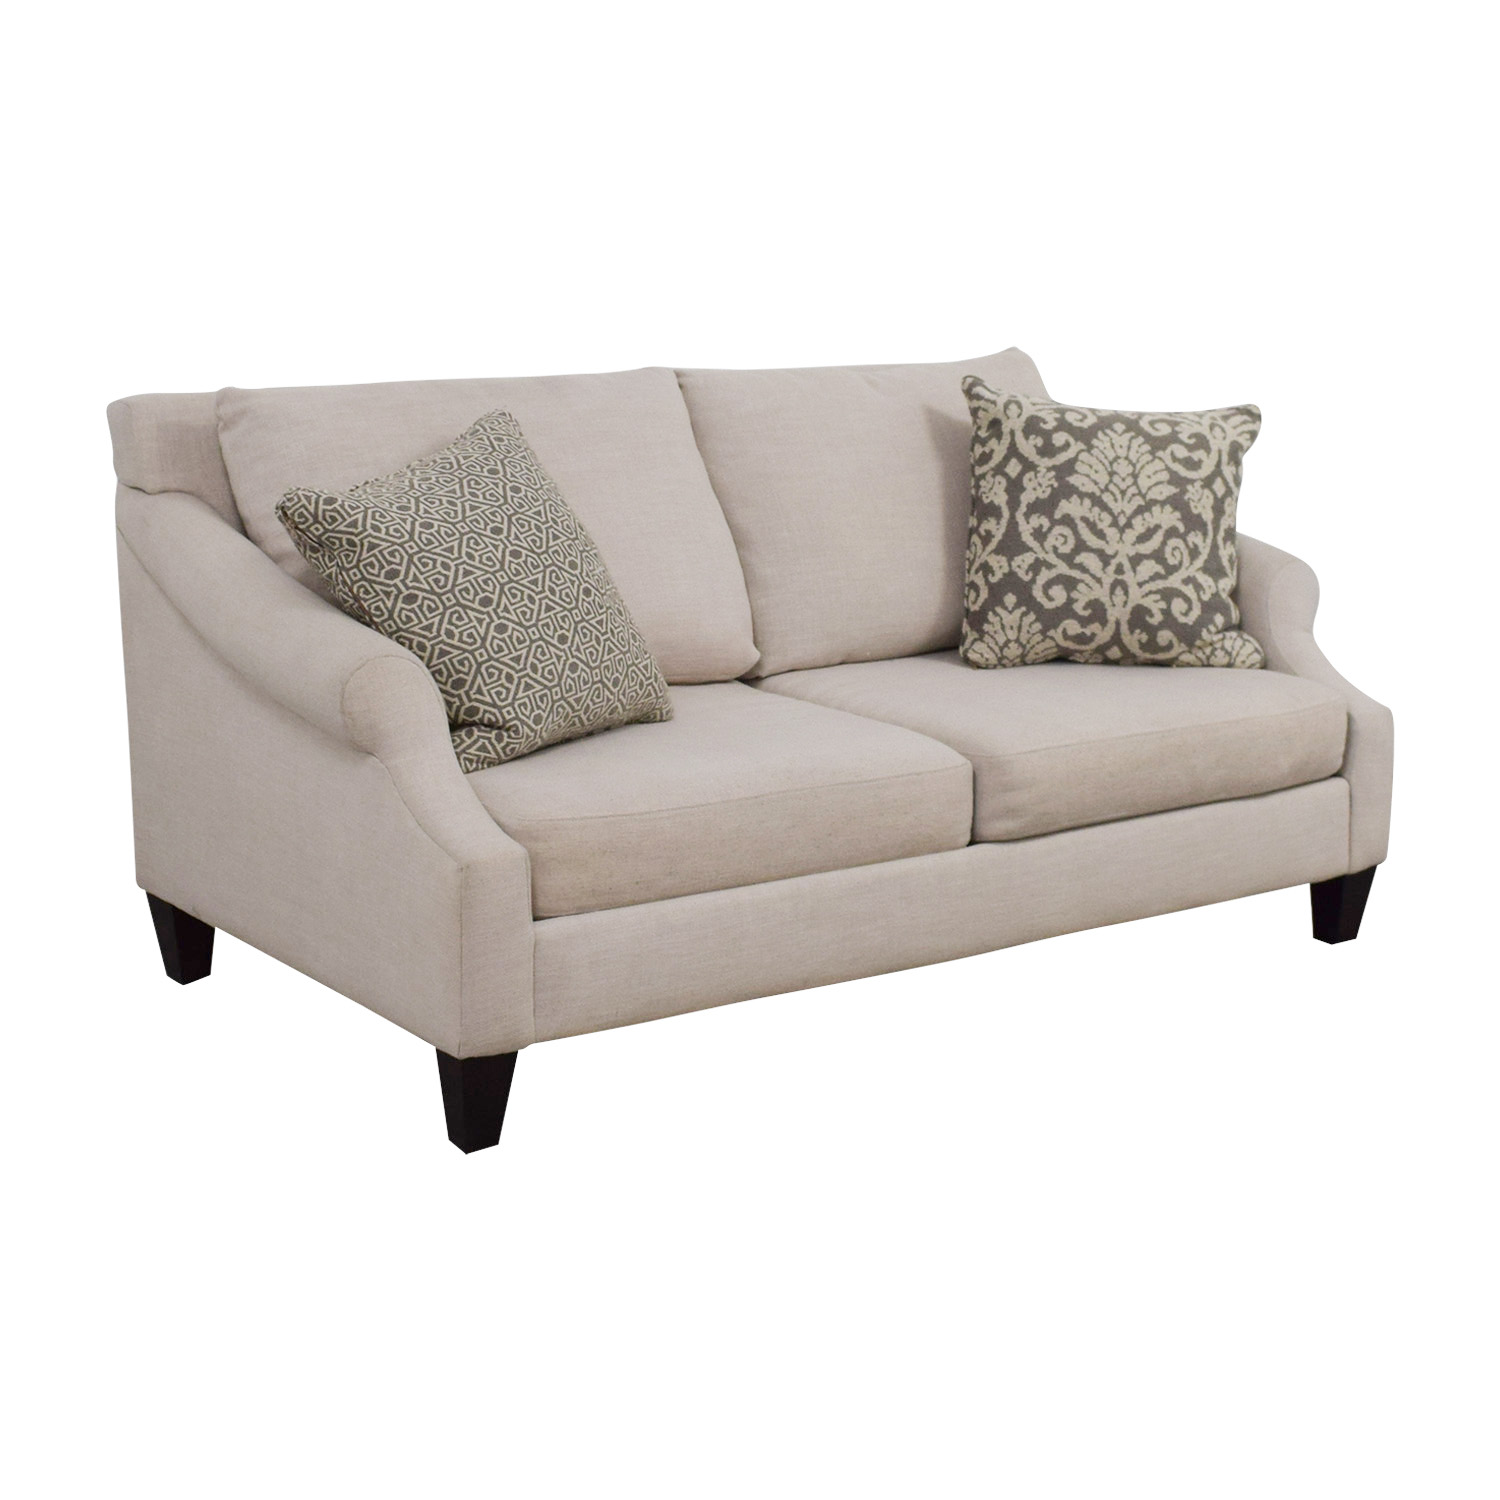 59 off rooms to go rooms to go beige two cushion loveseat sofas rh kaiyo com rooms to go reclining sofa and loveseat rooms to go leather sofas and loveseats